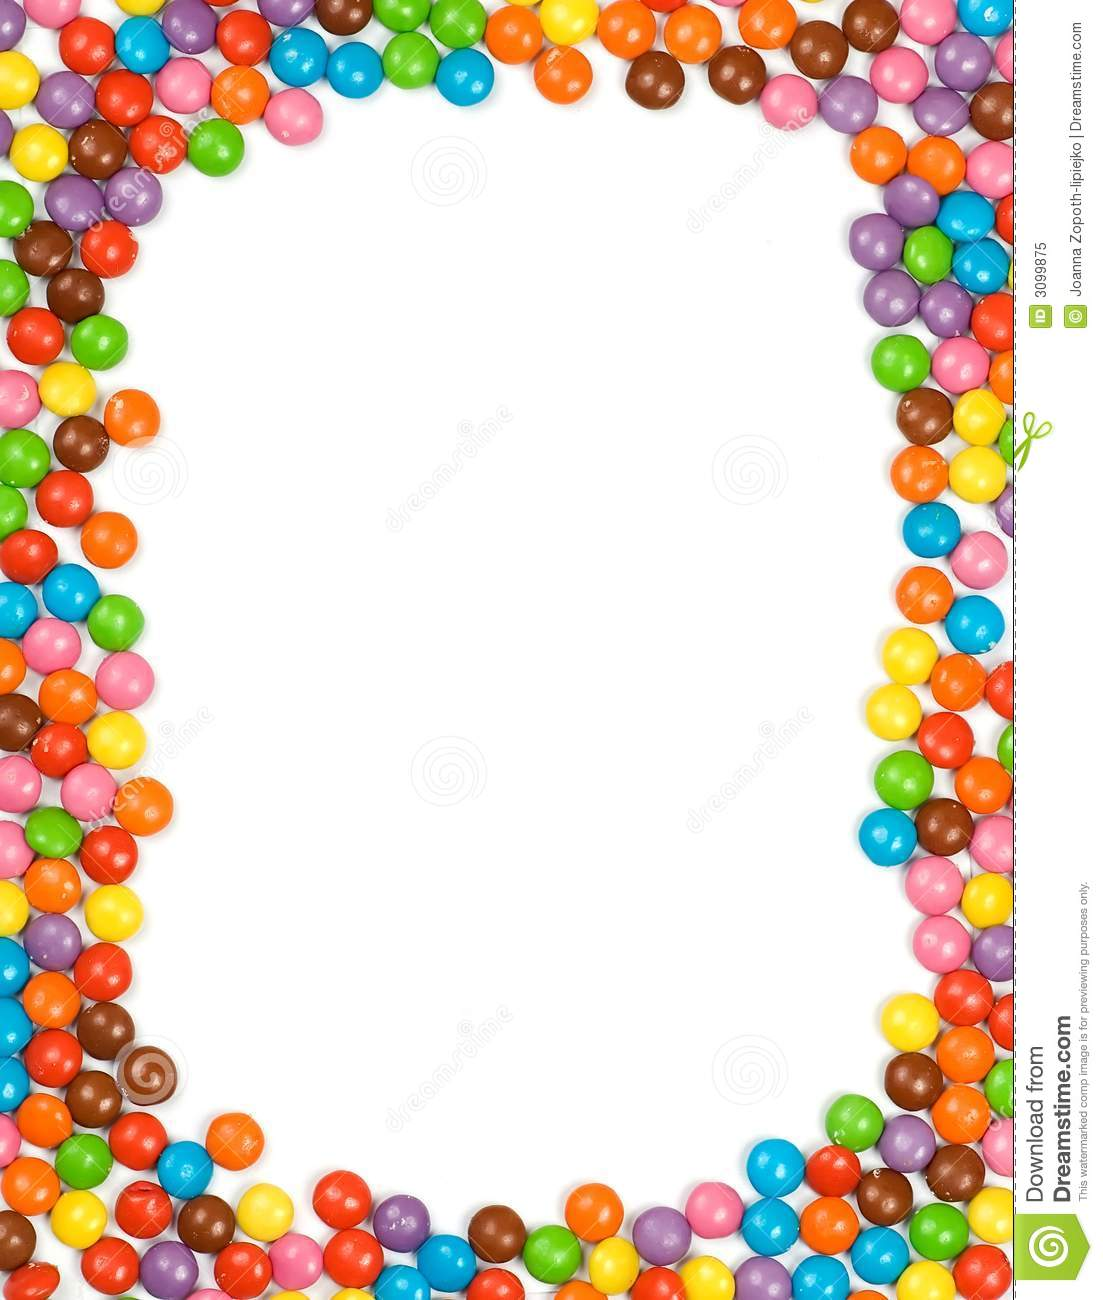 Candy Borders Chocolate borders clipart - clipart kid